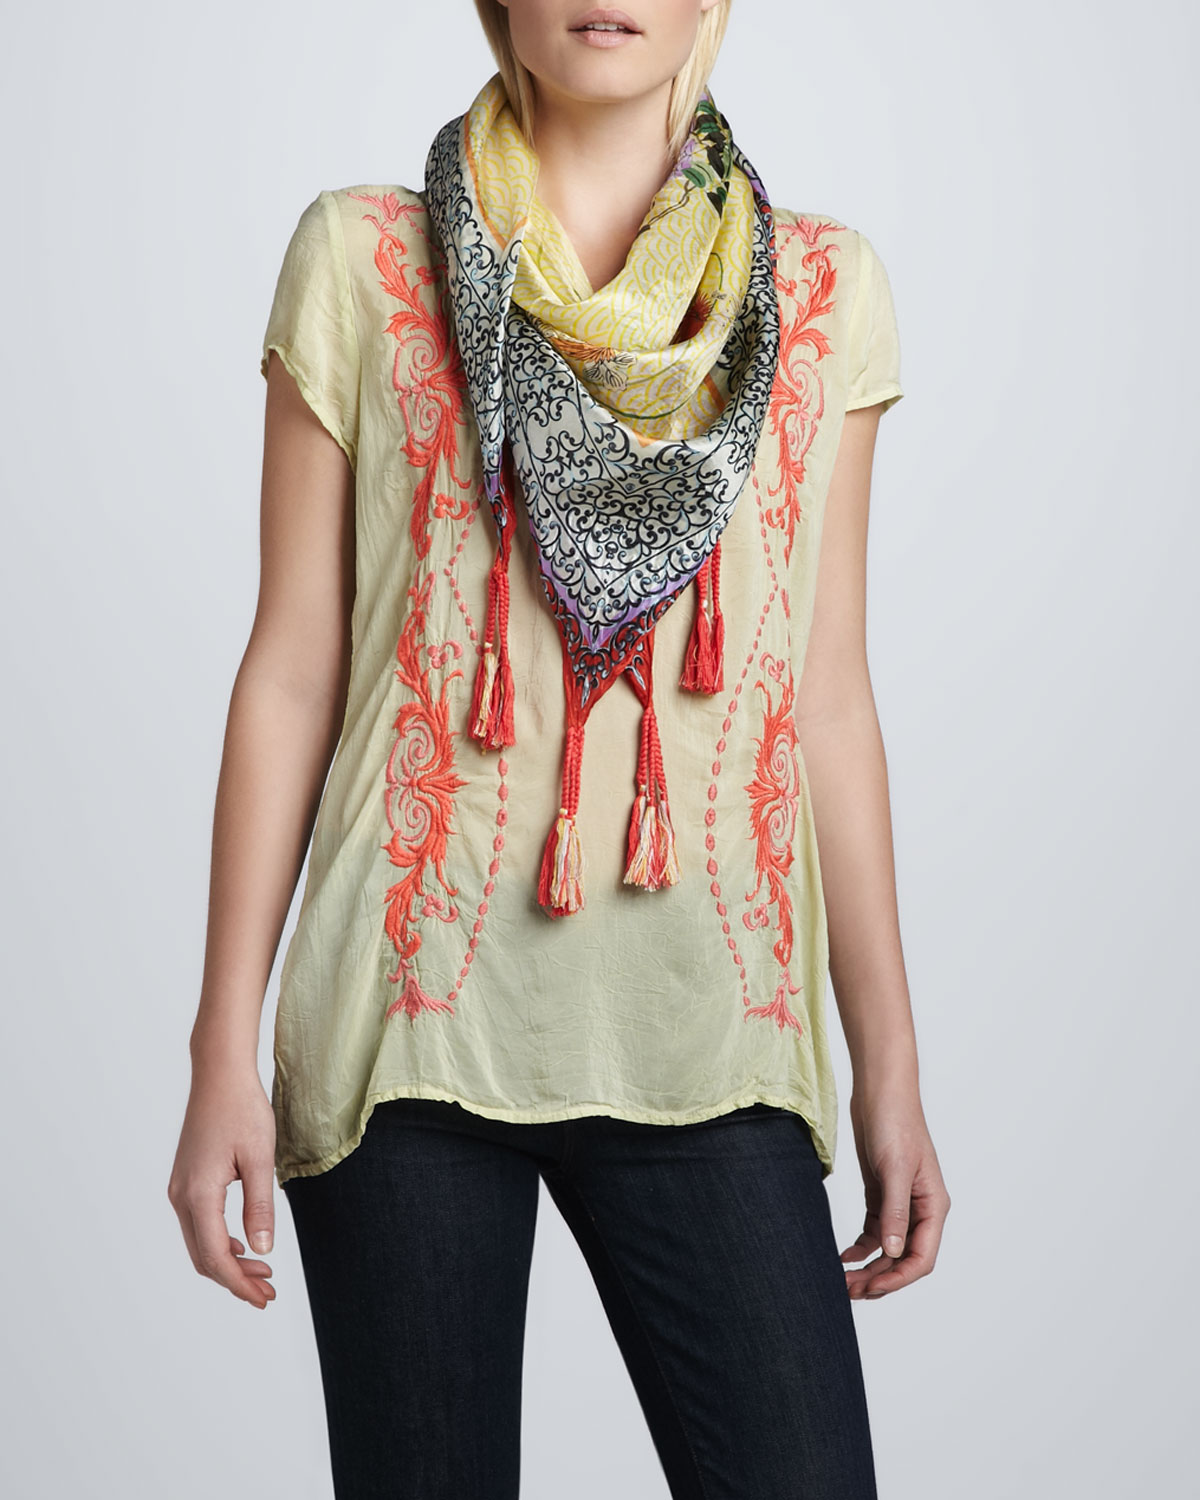 Embroidered Georgette Majestic Blouse & Wisteria Print Silk Scarf, Women's